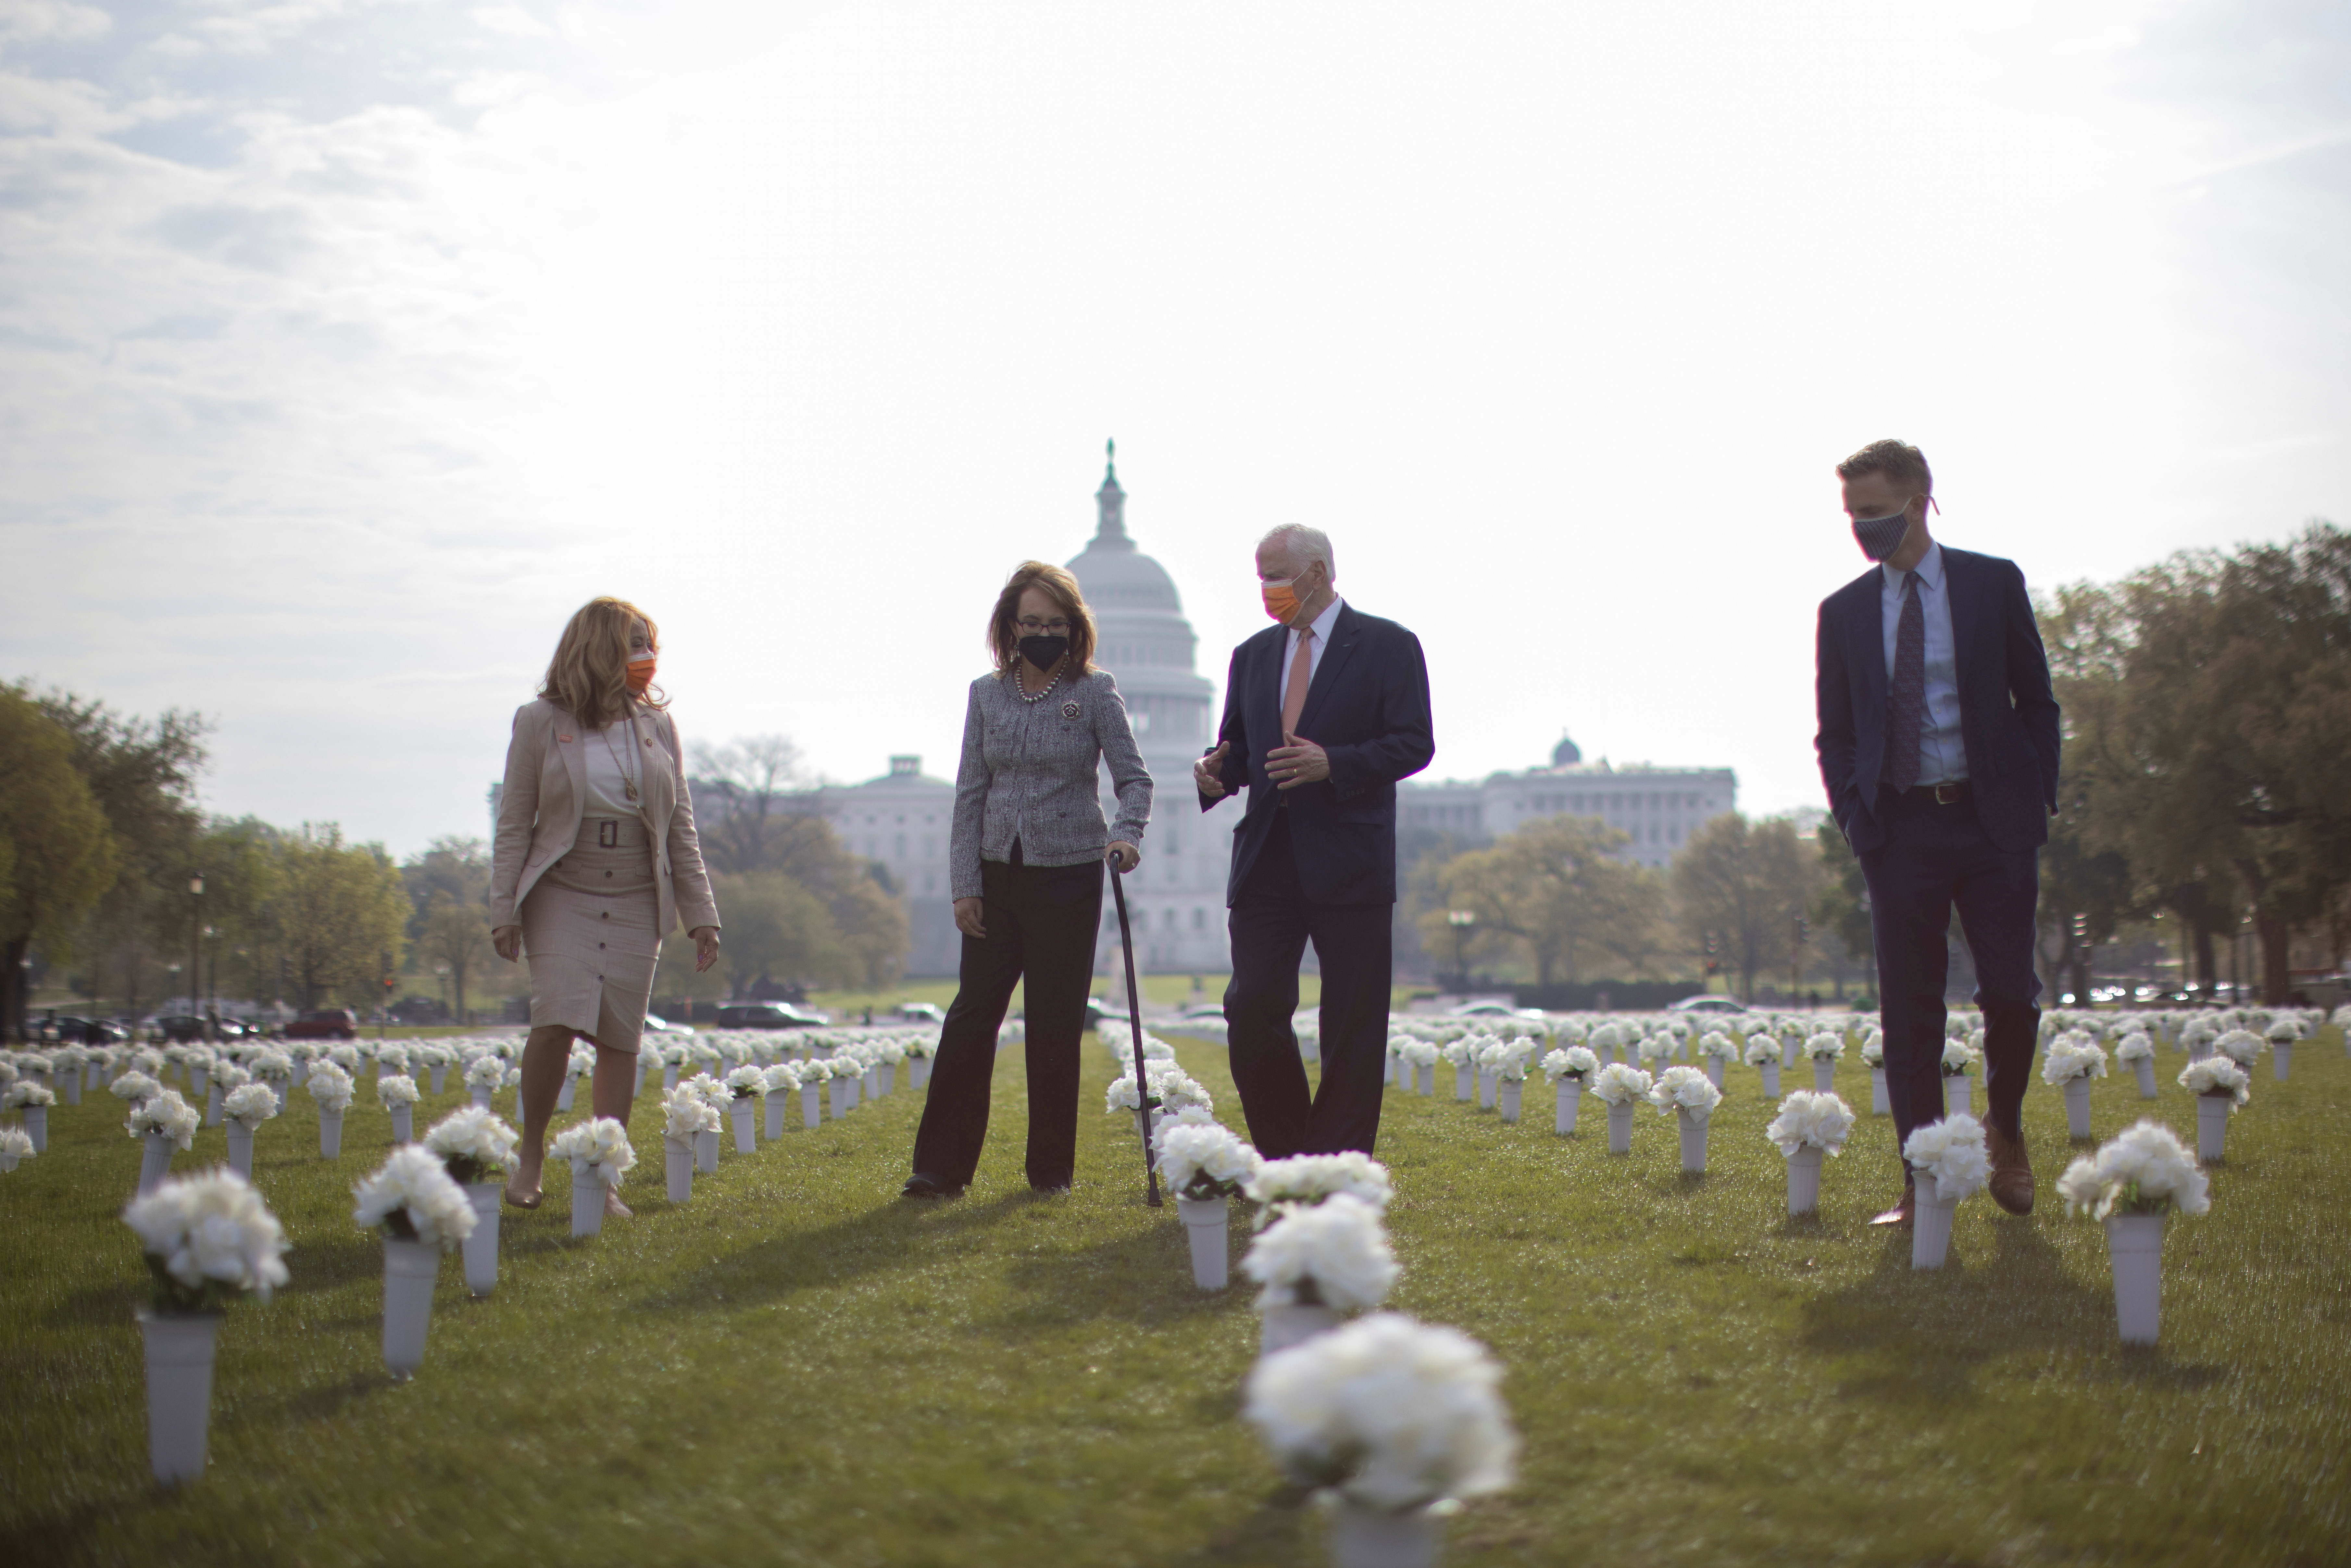 Former U.S. Rep. Gabby Giffords (D-AZ), who resigned her seat in Congress after surviving an assassination attempt, is flanked by U.S. Representatives' Lucy McBath (D-GA) and Mike Thompson (D-CA) as they walk in the new Gun Violence Memorial, an installation featuring 38,000 silk white roses in 4,000 vases to commemorate the roughly 40,000 Americans who die annually in gun violence, on the National Mall in Washington, U.S., April 14, 2021. REUTERS/Carlos Barria? - RC2QVM9QTVKT